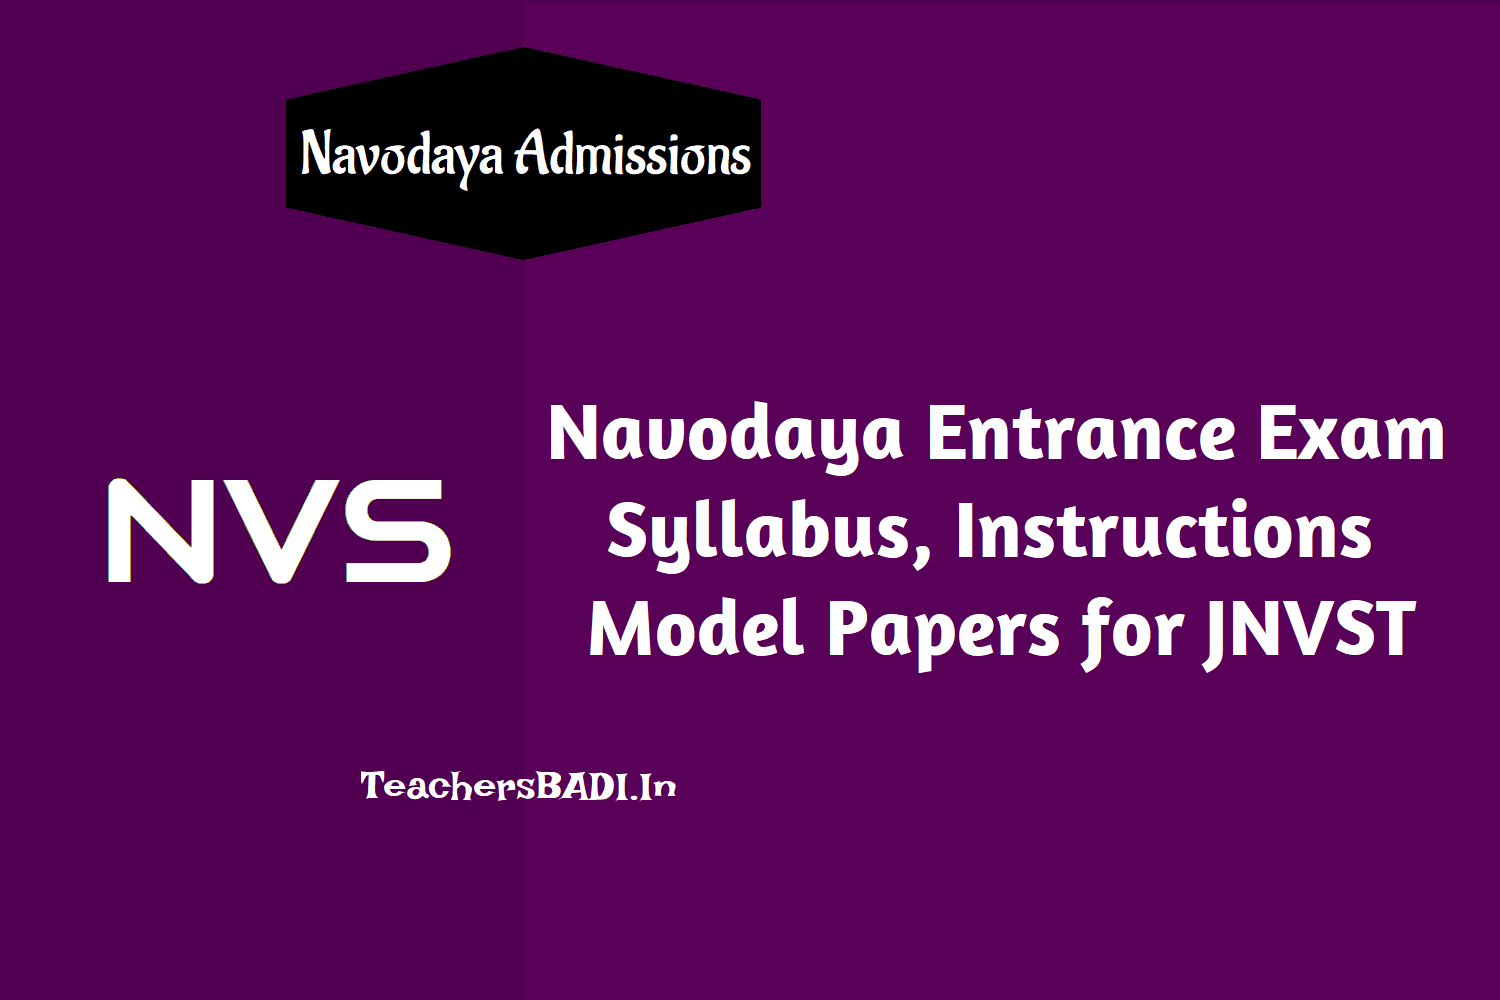 navodaya entrance exam syllabus instructions model papers for